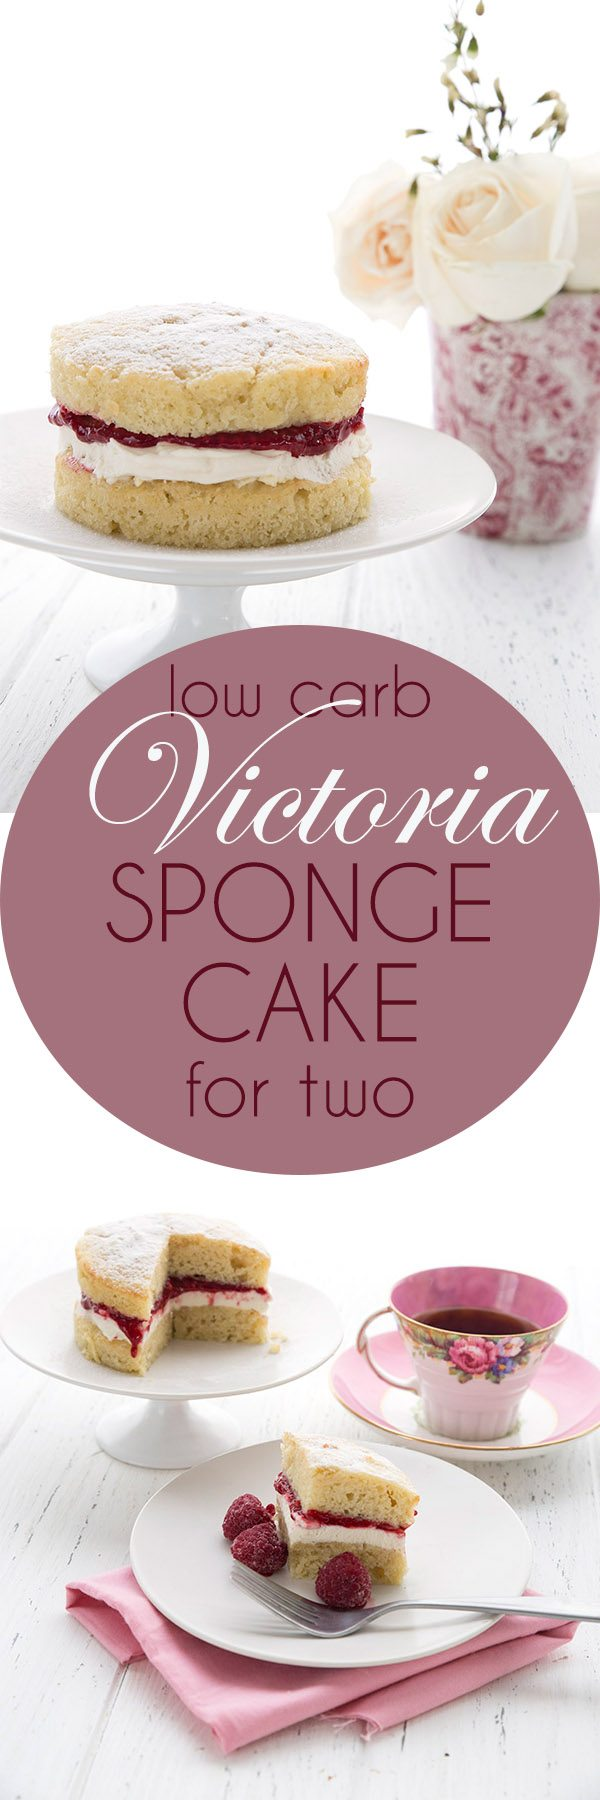 This delicious Keto Victoria Sponge Cake makes a perfect healthy Valentine's Day dessert